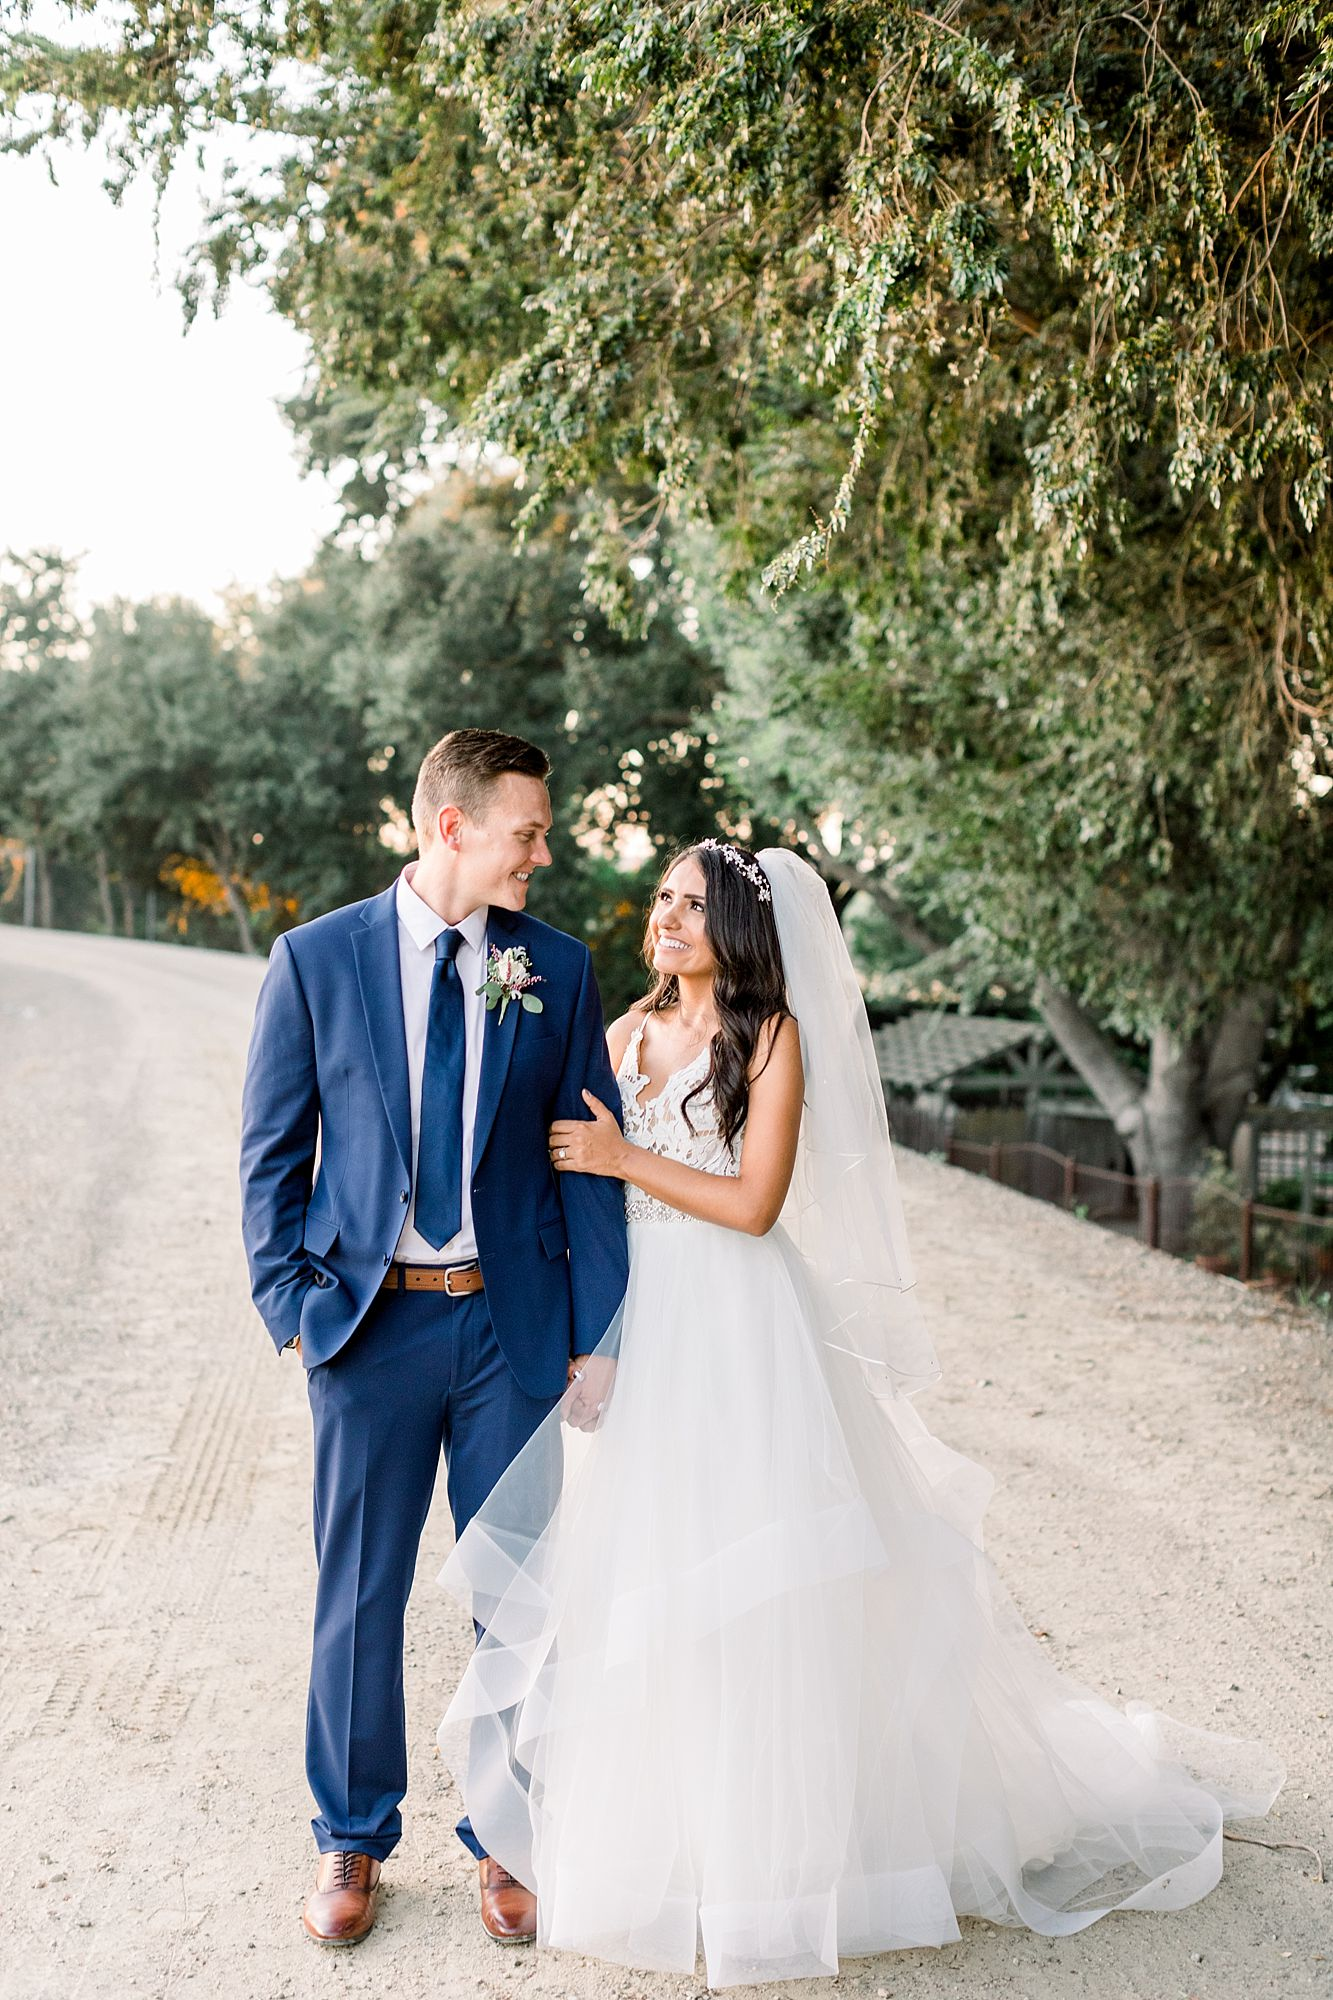 The River Mill Wedding Stockton - Ashley Baumgartner - Stockton Wedding Photographer - Sacramento Wedding Photography - Hybrid and Film Photographer - Sacramento Film Photographer_0057.jpg